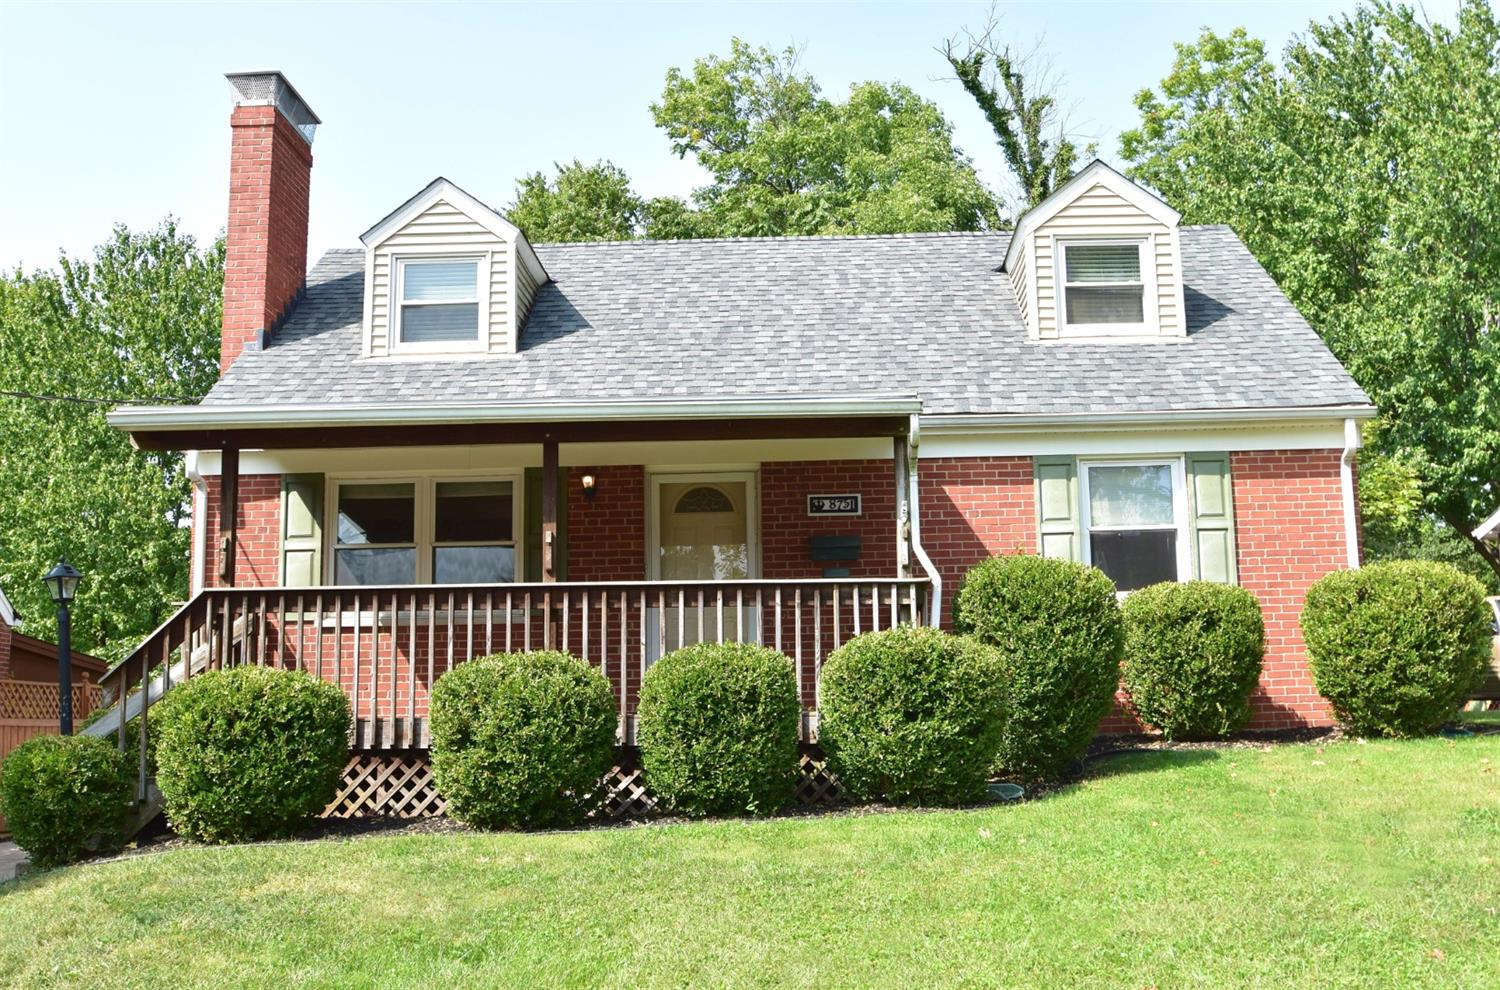 8751 Wicklow Ave Dillonvale, OH